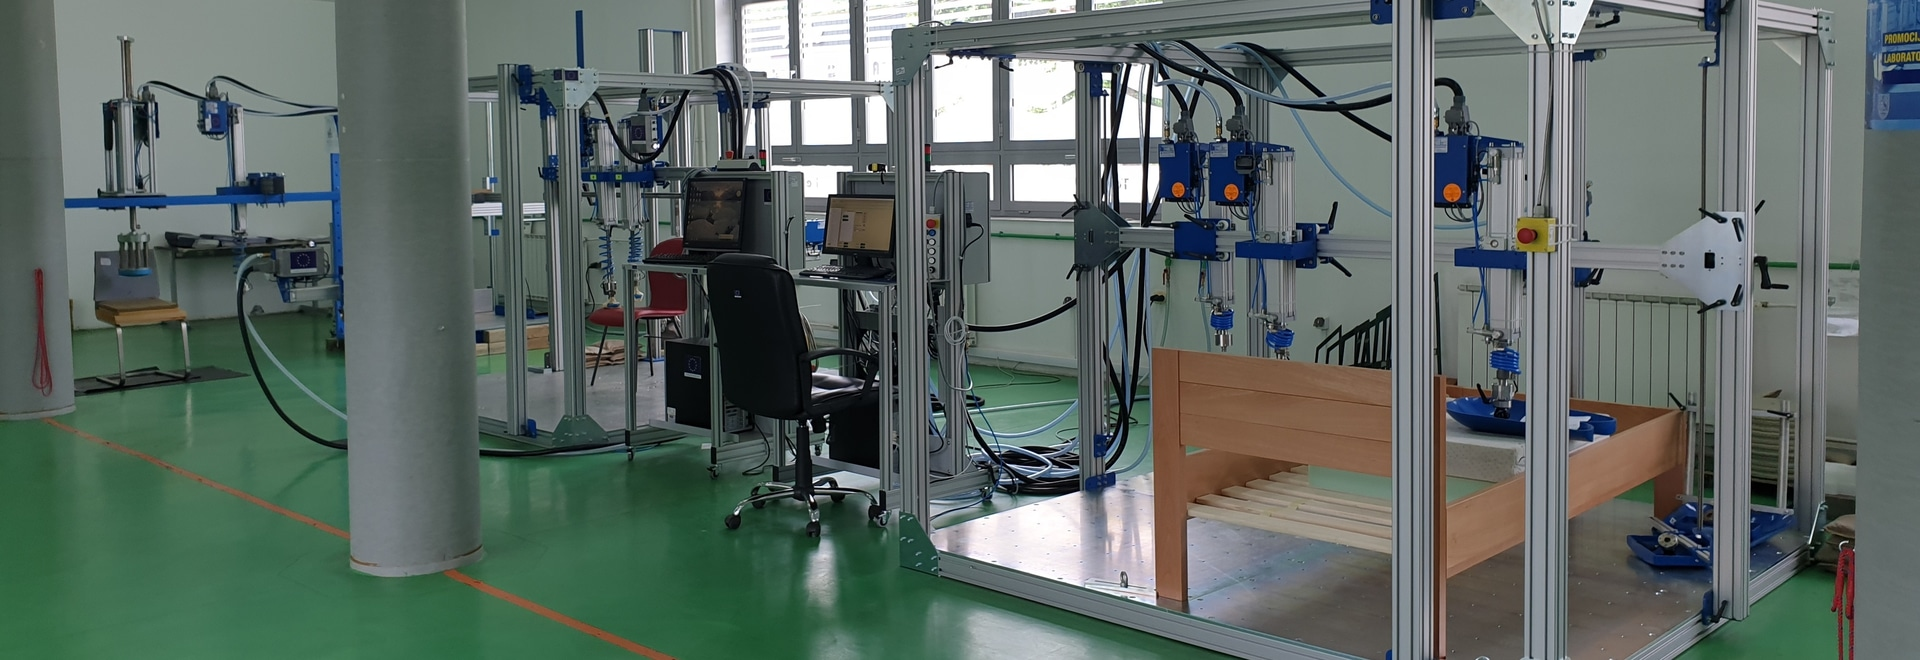 Testing laboratory ZEDA with furniture test rigs from Hegewald and Peschke